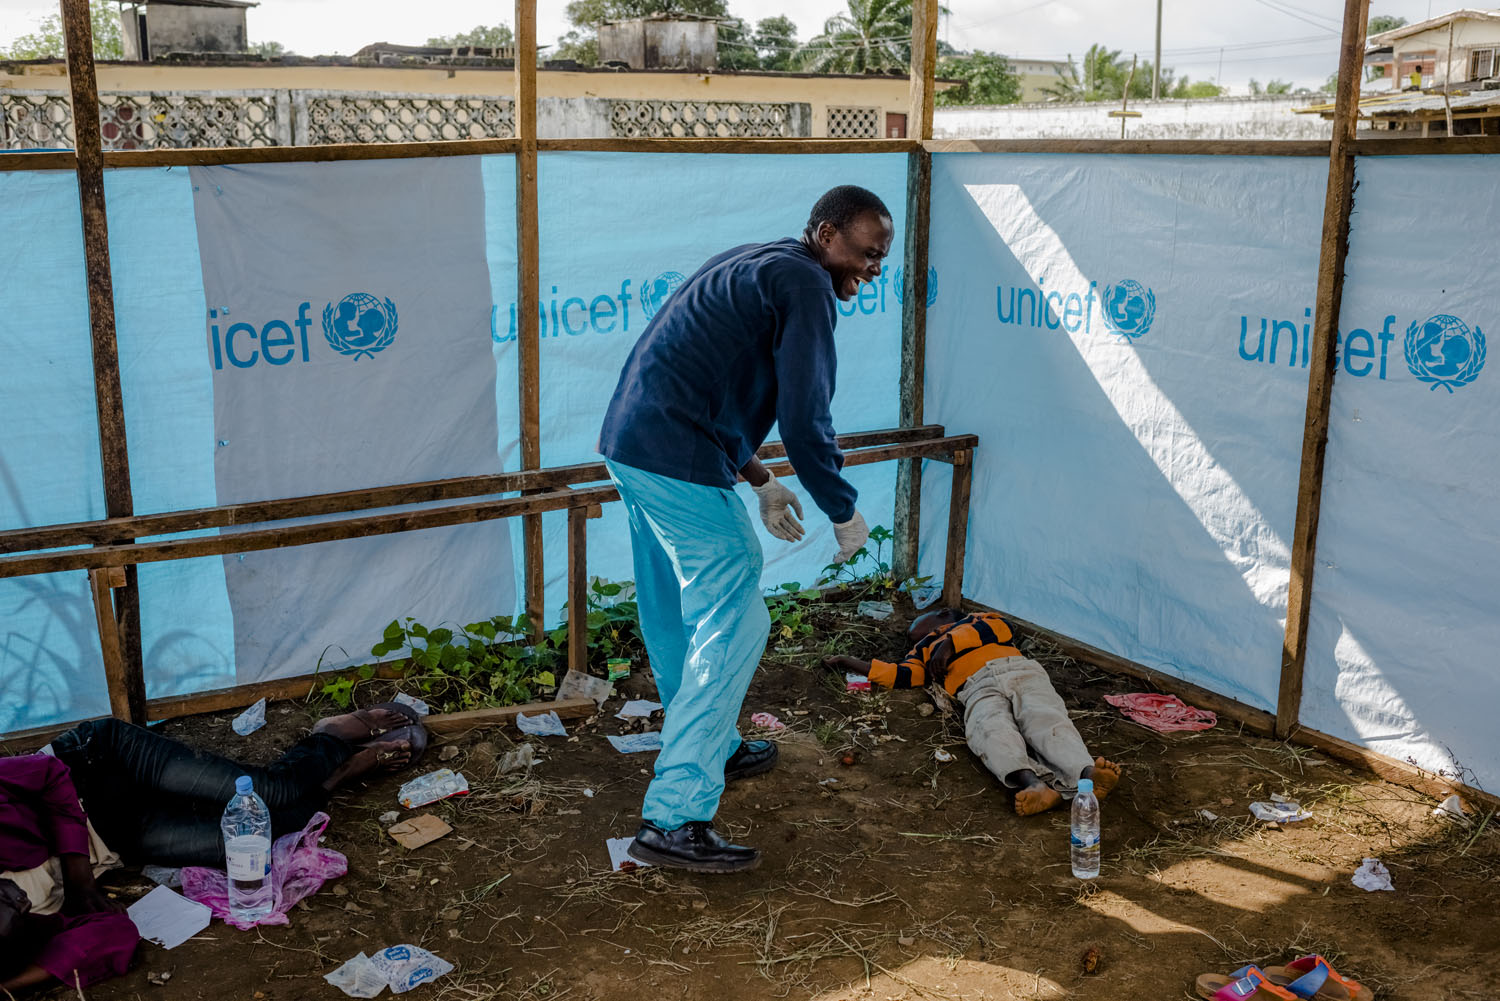 Edward Dorbor reacts after believing that his son, James Dorbor, 8, had died. However, the boy survived for a few additional hours before dying at the JFK Ebola treatment center on Sept. 5, 2014 in Monrovia, Liberia.